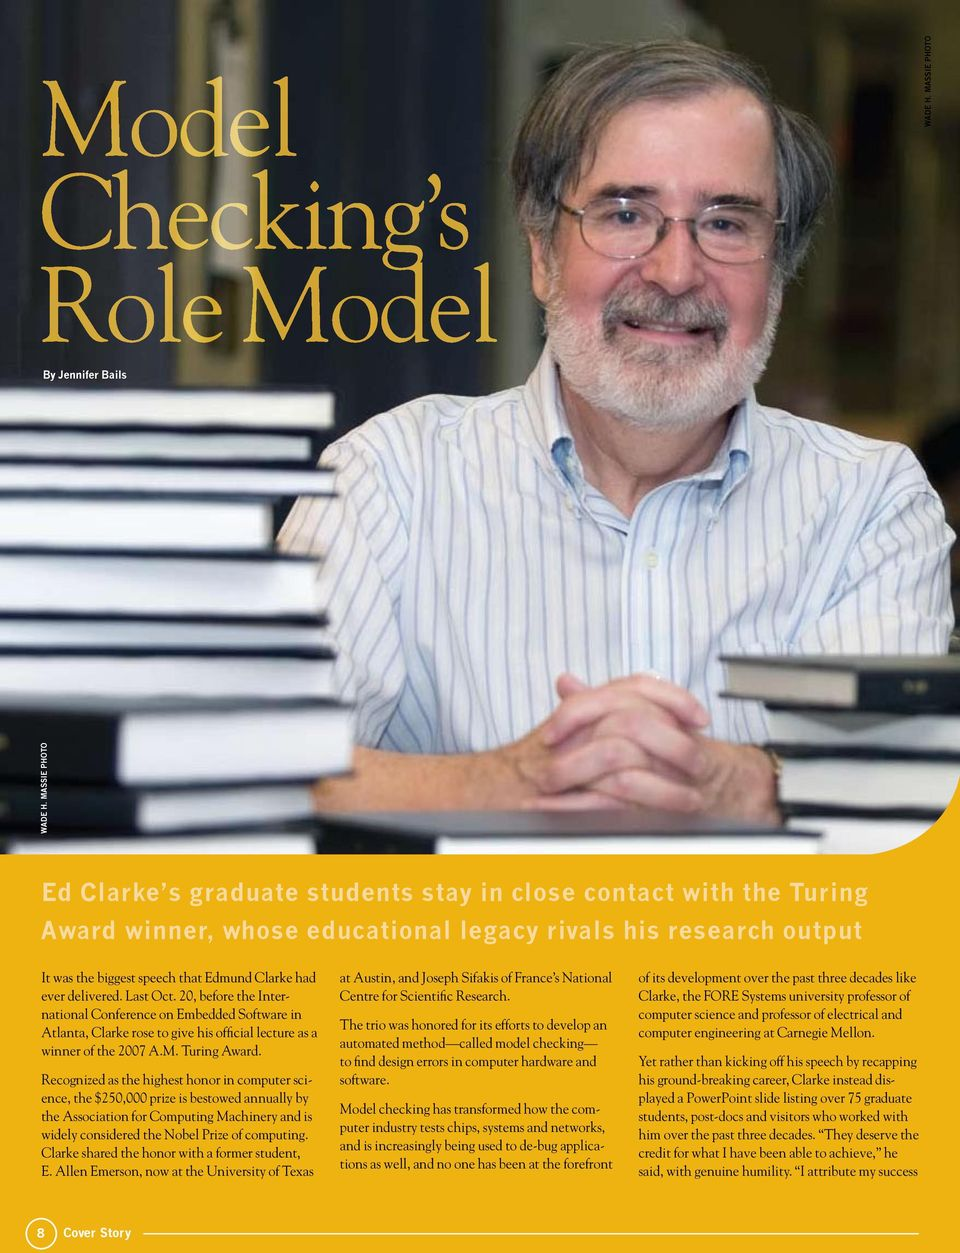 ever delivered. Last Oct. 20, before the International Conference on Embedded Software in Atlanta, Clarke rose to give his official lecture as a winner of the 2007 A.M. Turing Award.